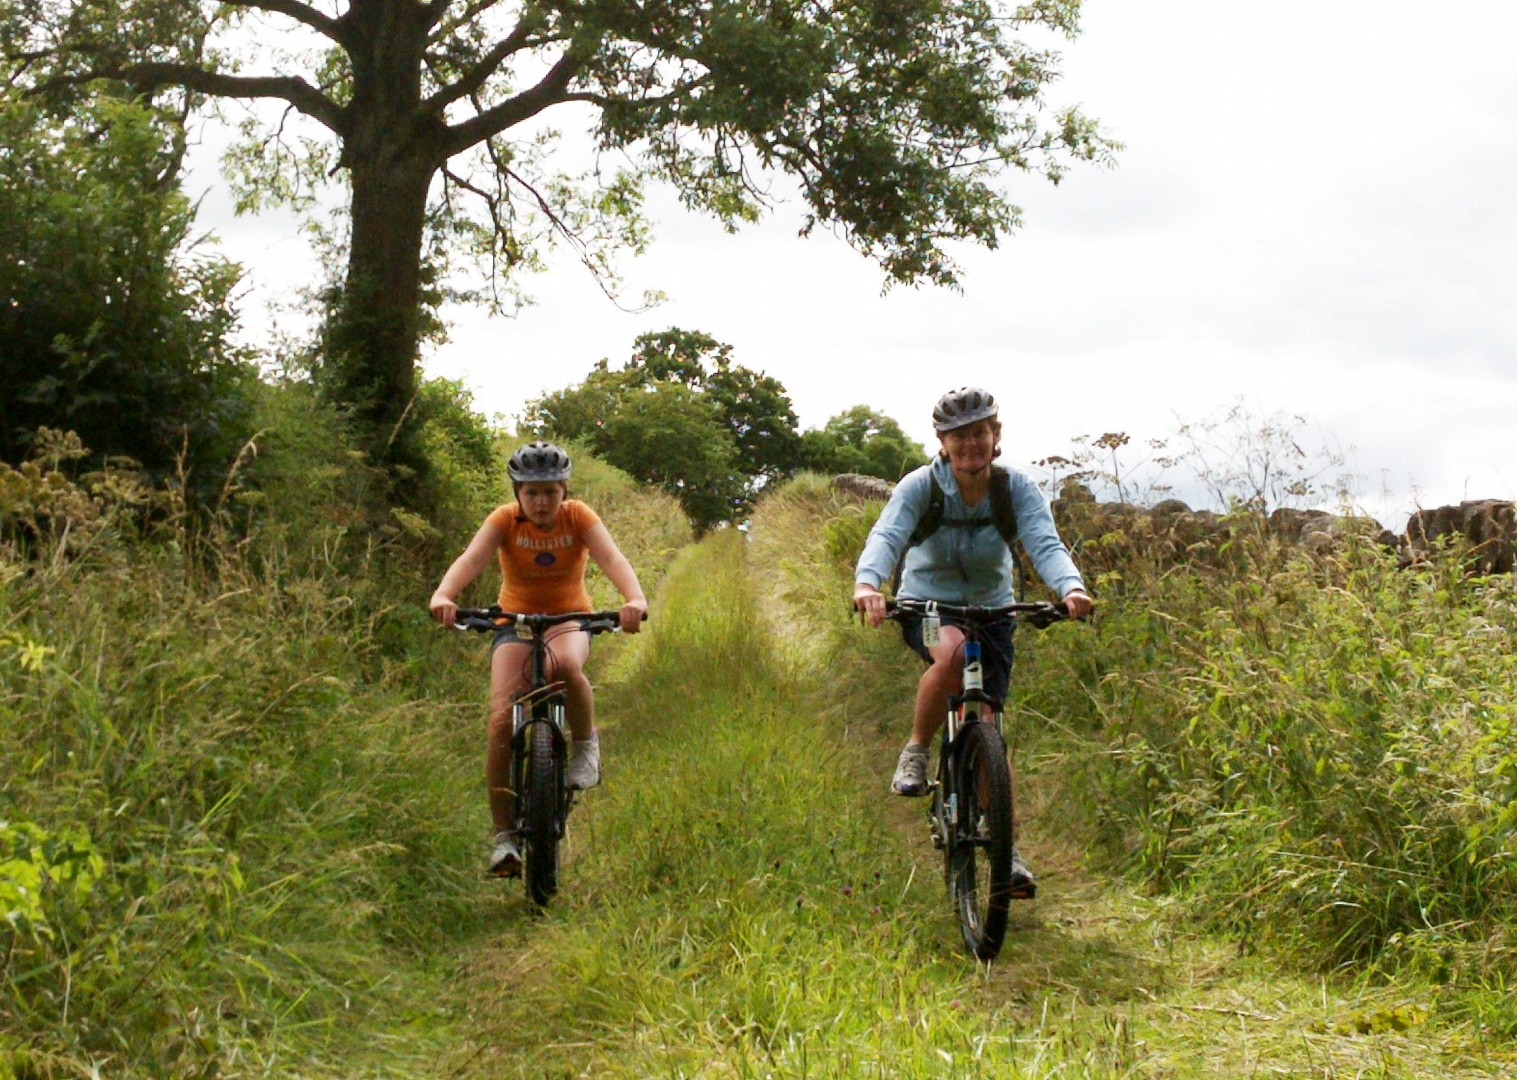 country-cycling-lake-district-guided-bike-skills.jpg - UK - Lake District - Bike Skills - Family Cycling